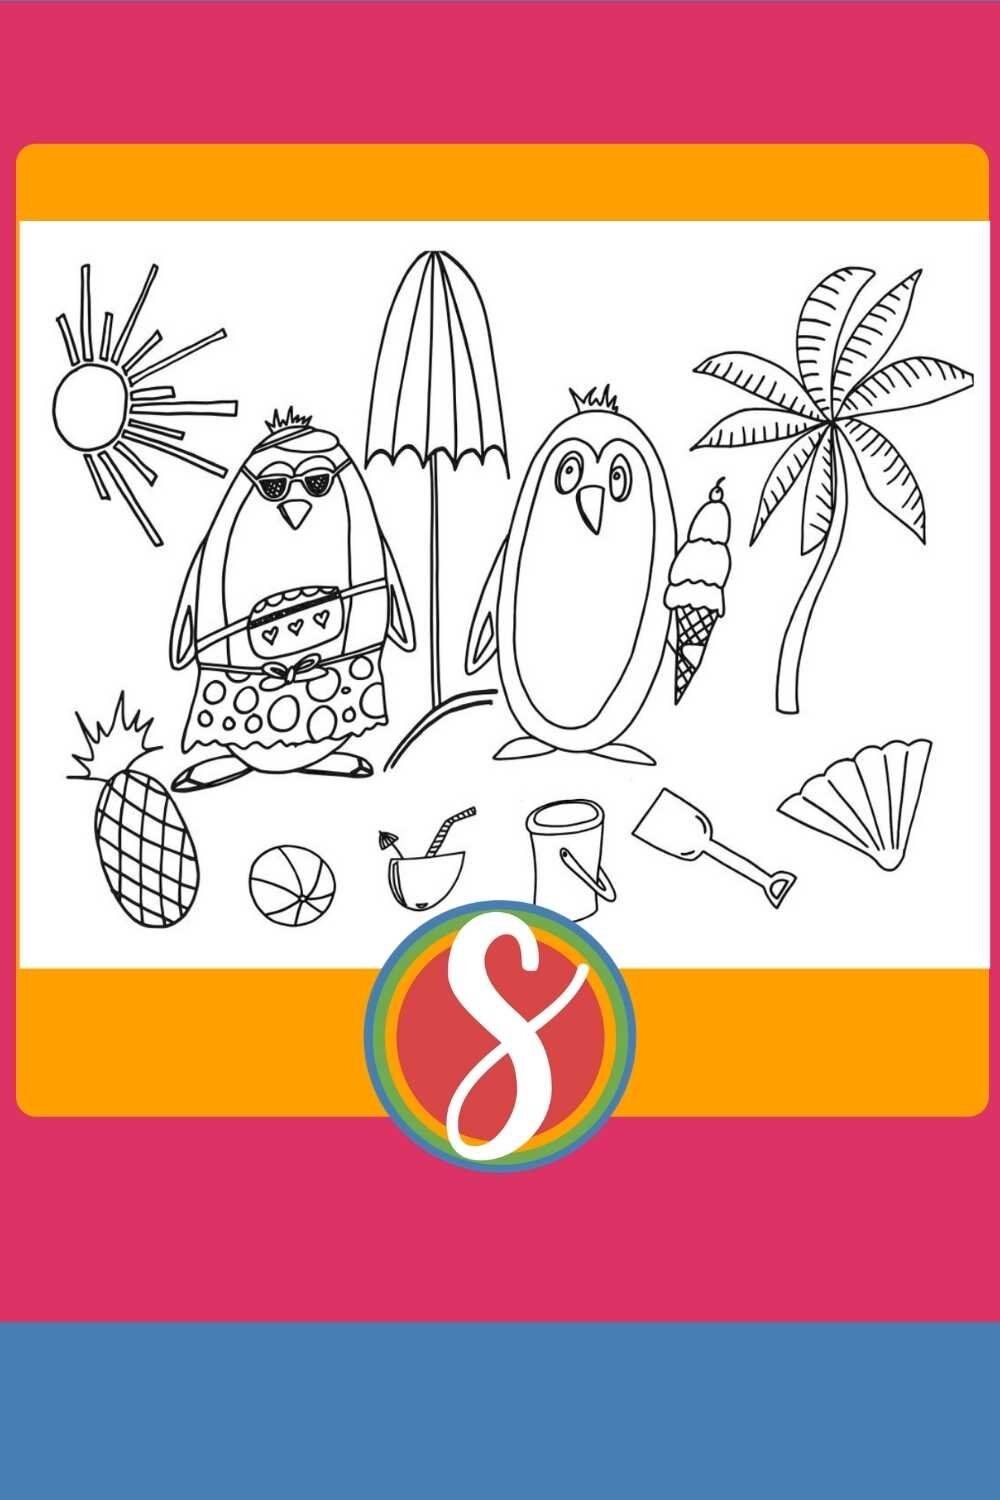 Penguins at the beach - free printable penguin coloring pages from Stevie Doodles